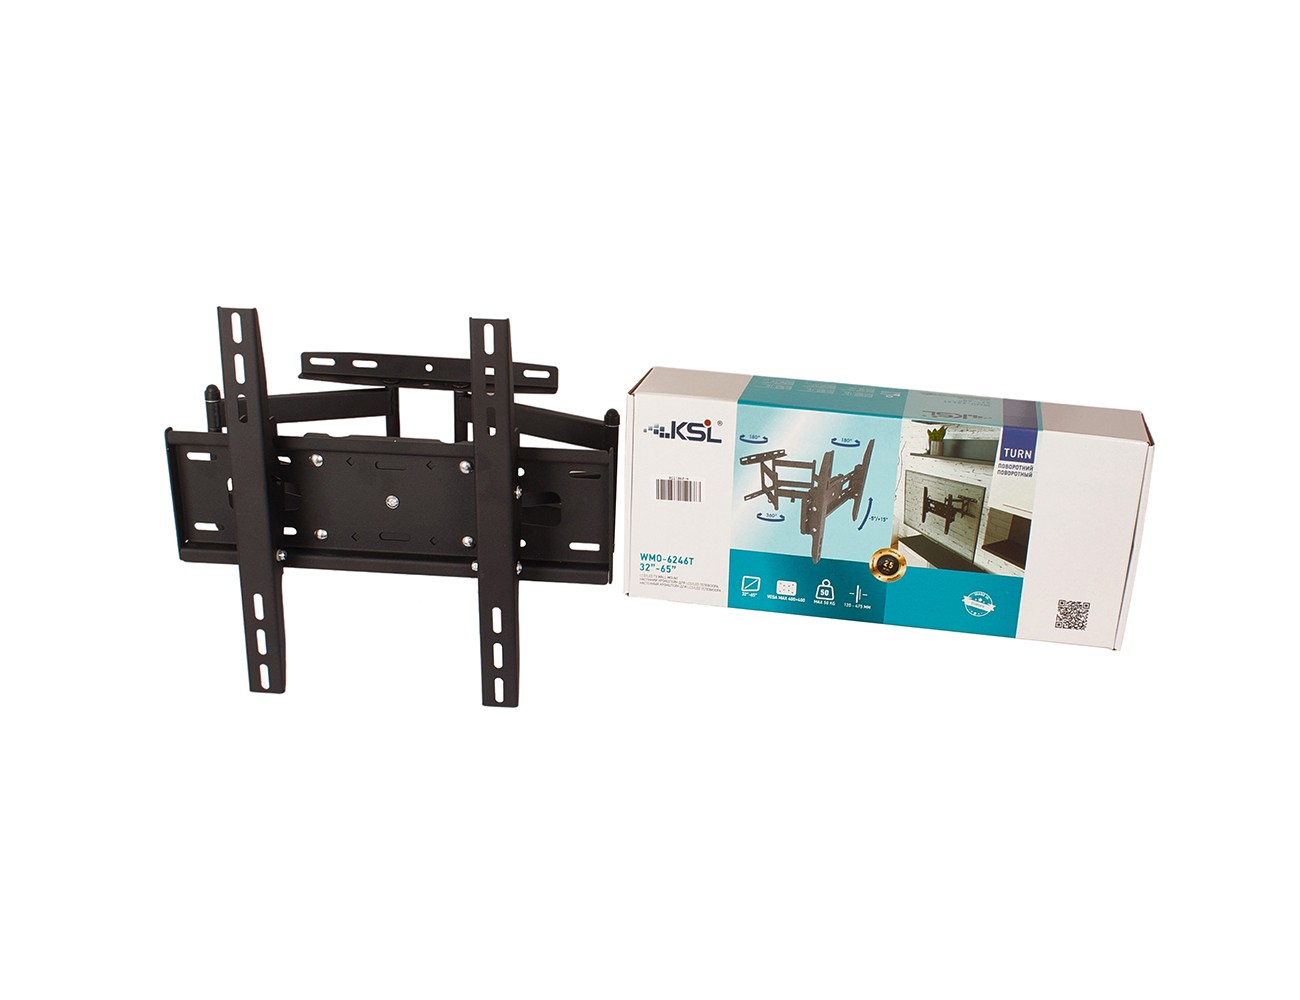 Articulating TV Wall Mount WMO-6246T